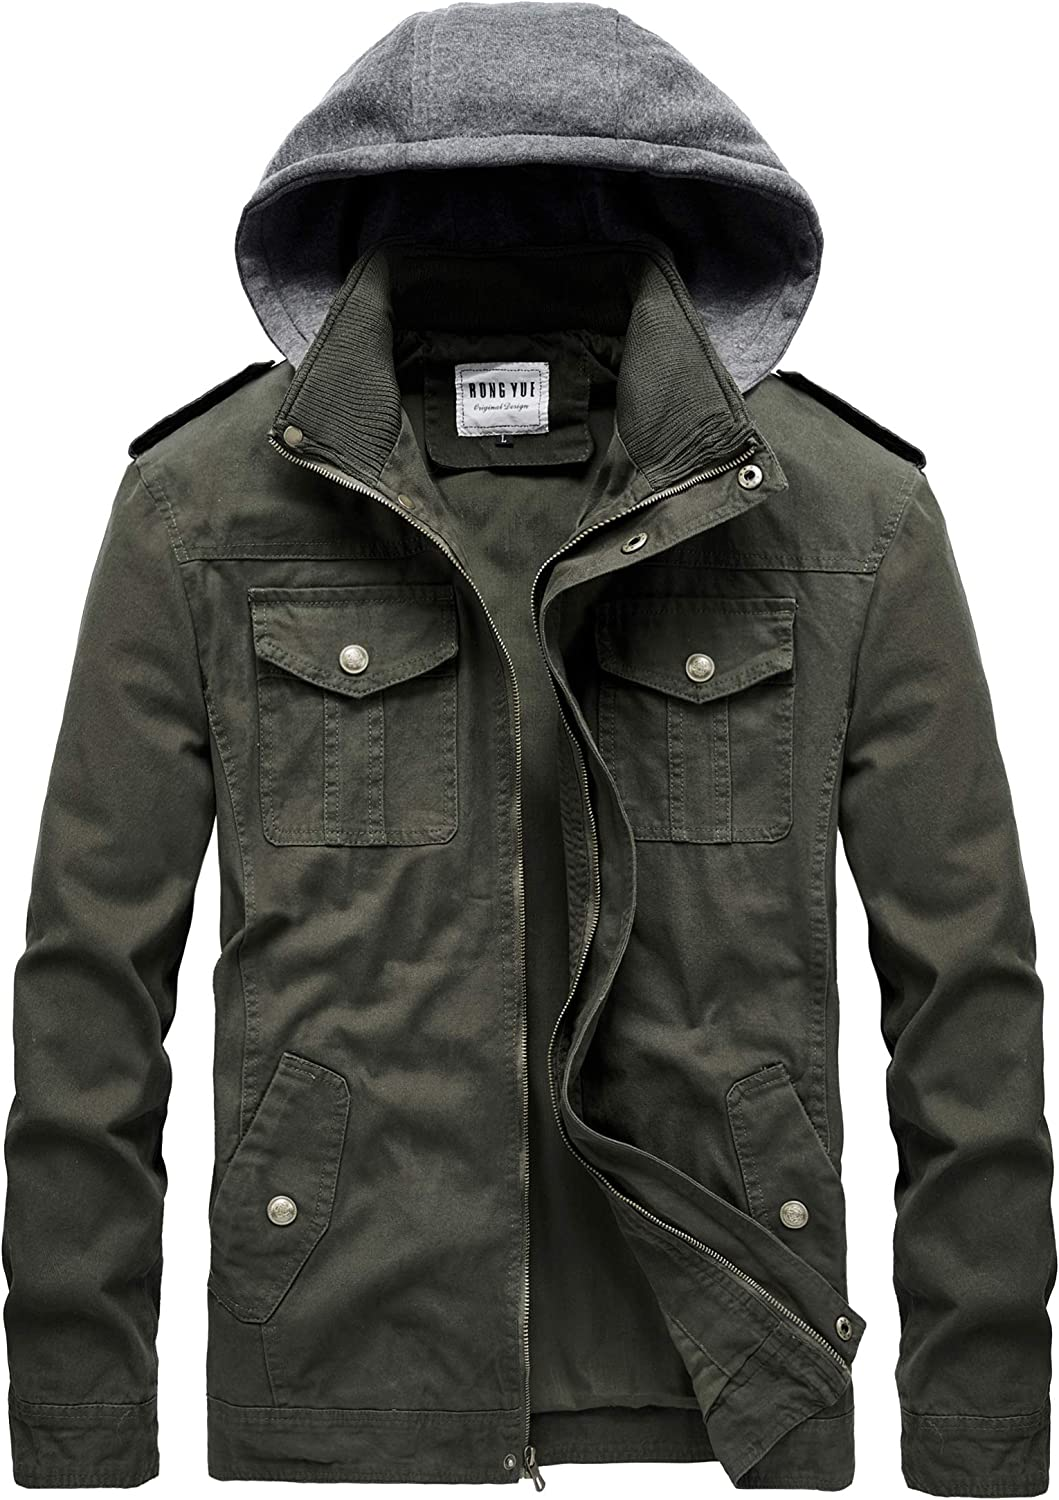 RongYue Men's Large-scale sale Casual Cotton Military Jacket Max 78% OFF with Windbreaker Rem